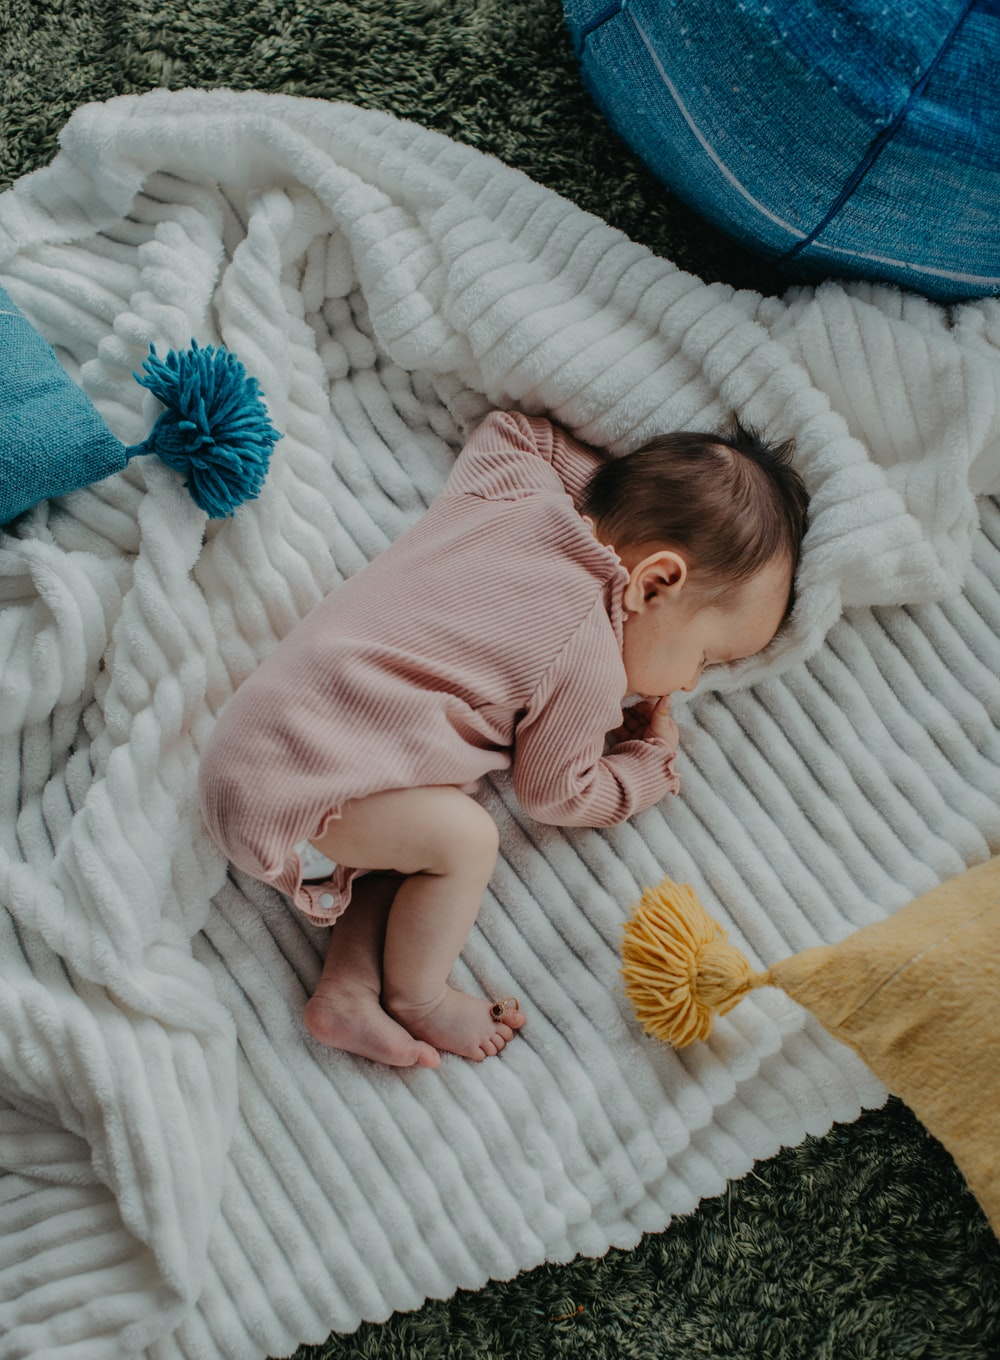 baby in pink onesie lying on white bed